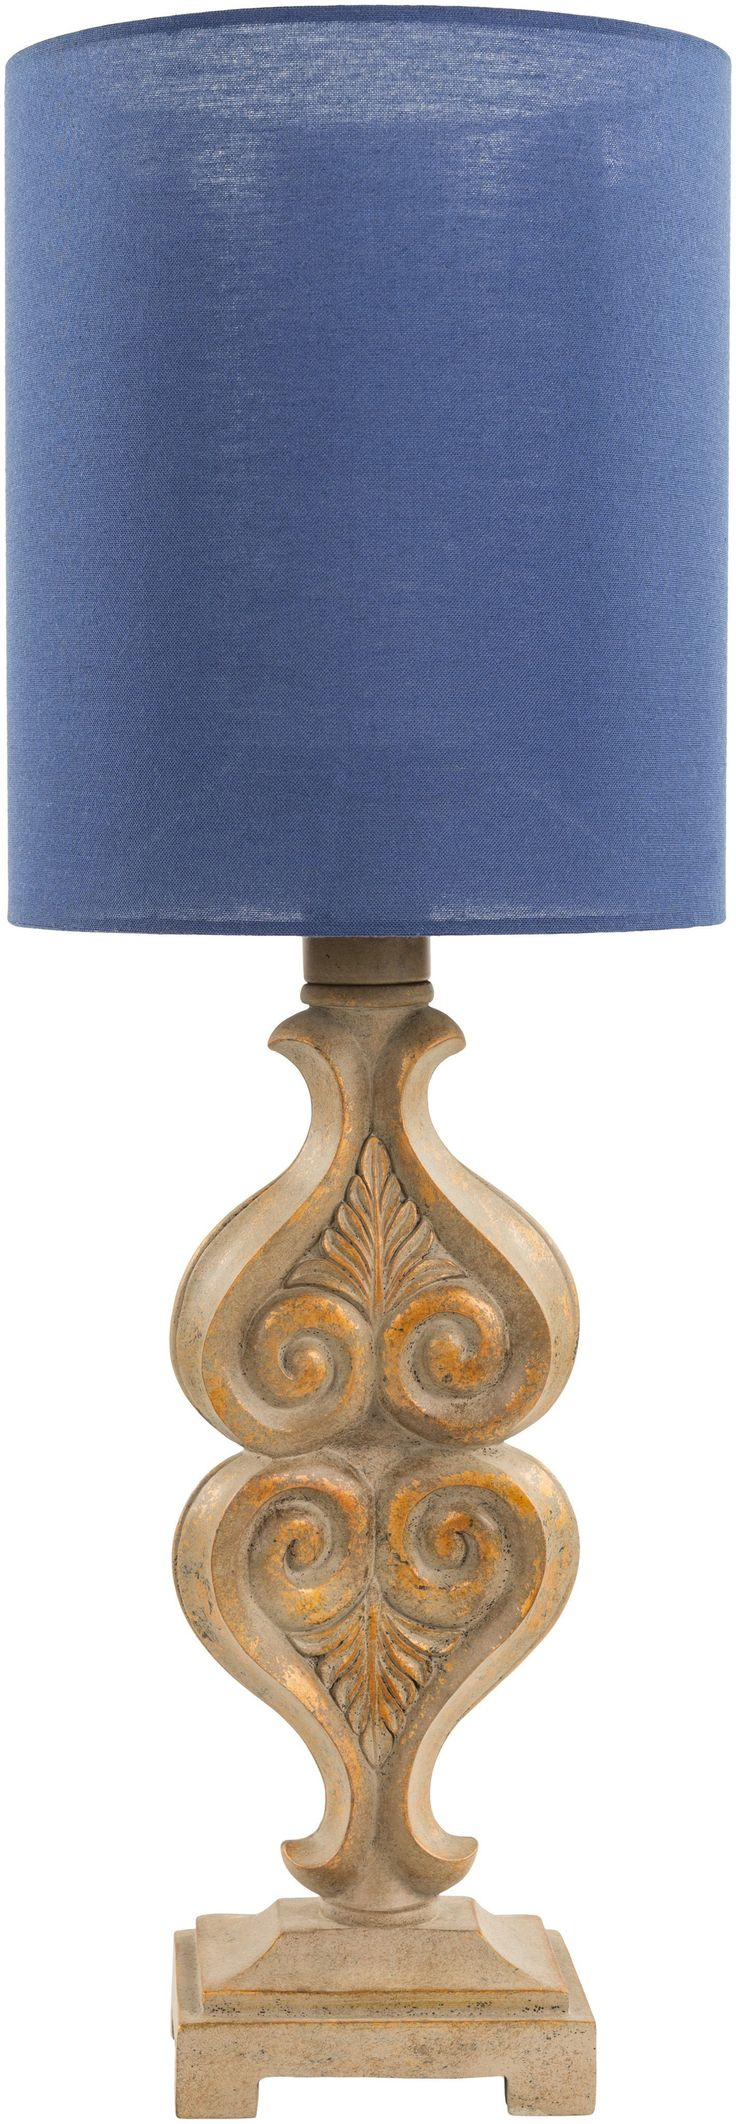 Outdoor table lamp - Surya Keanu Outdoor Table Lamp